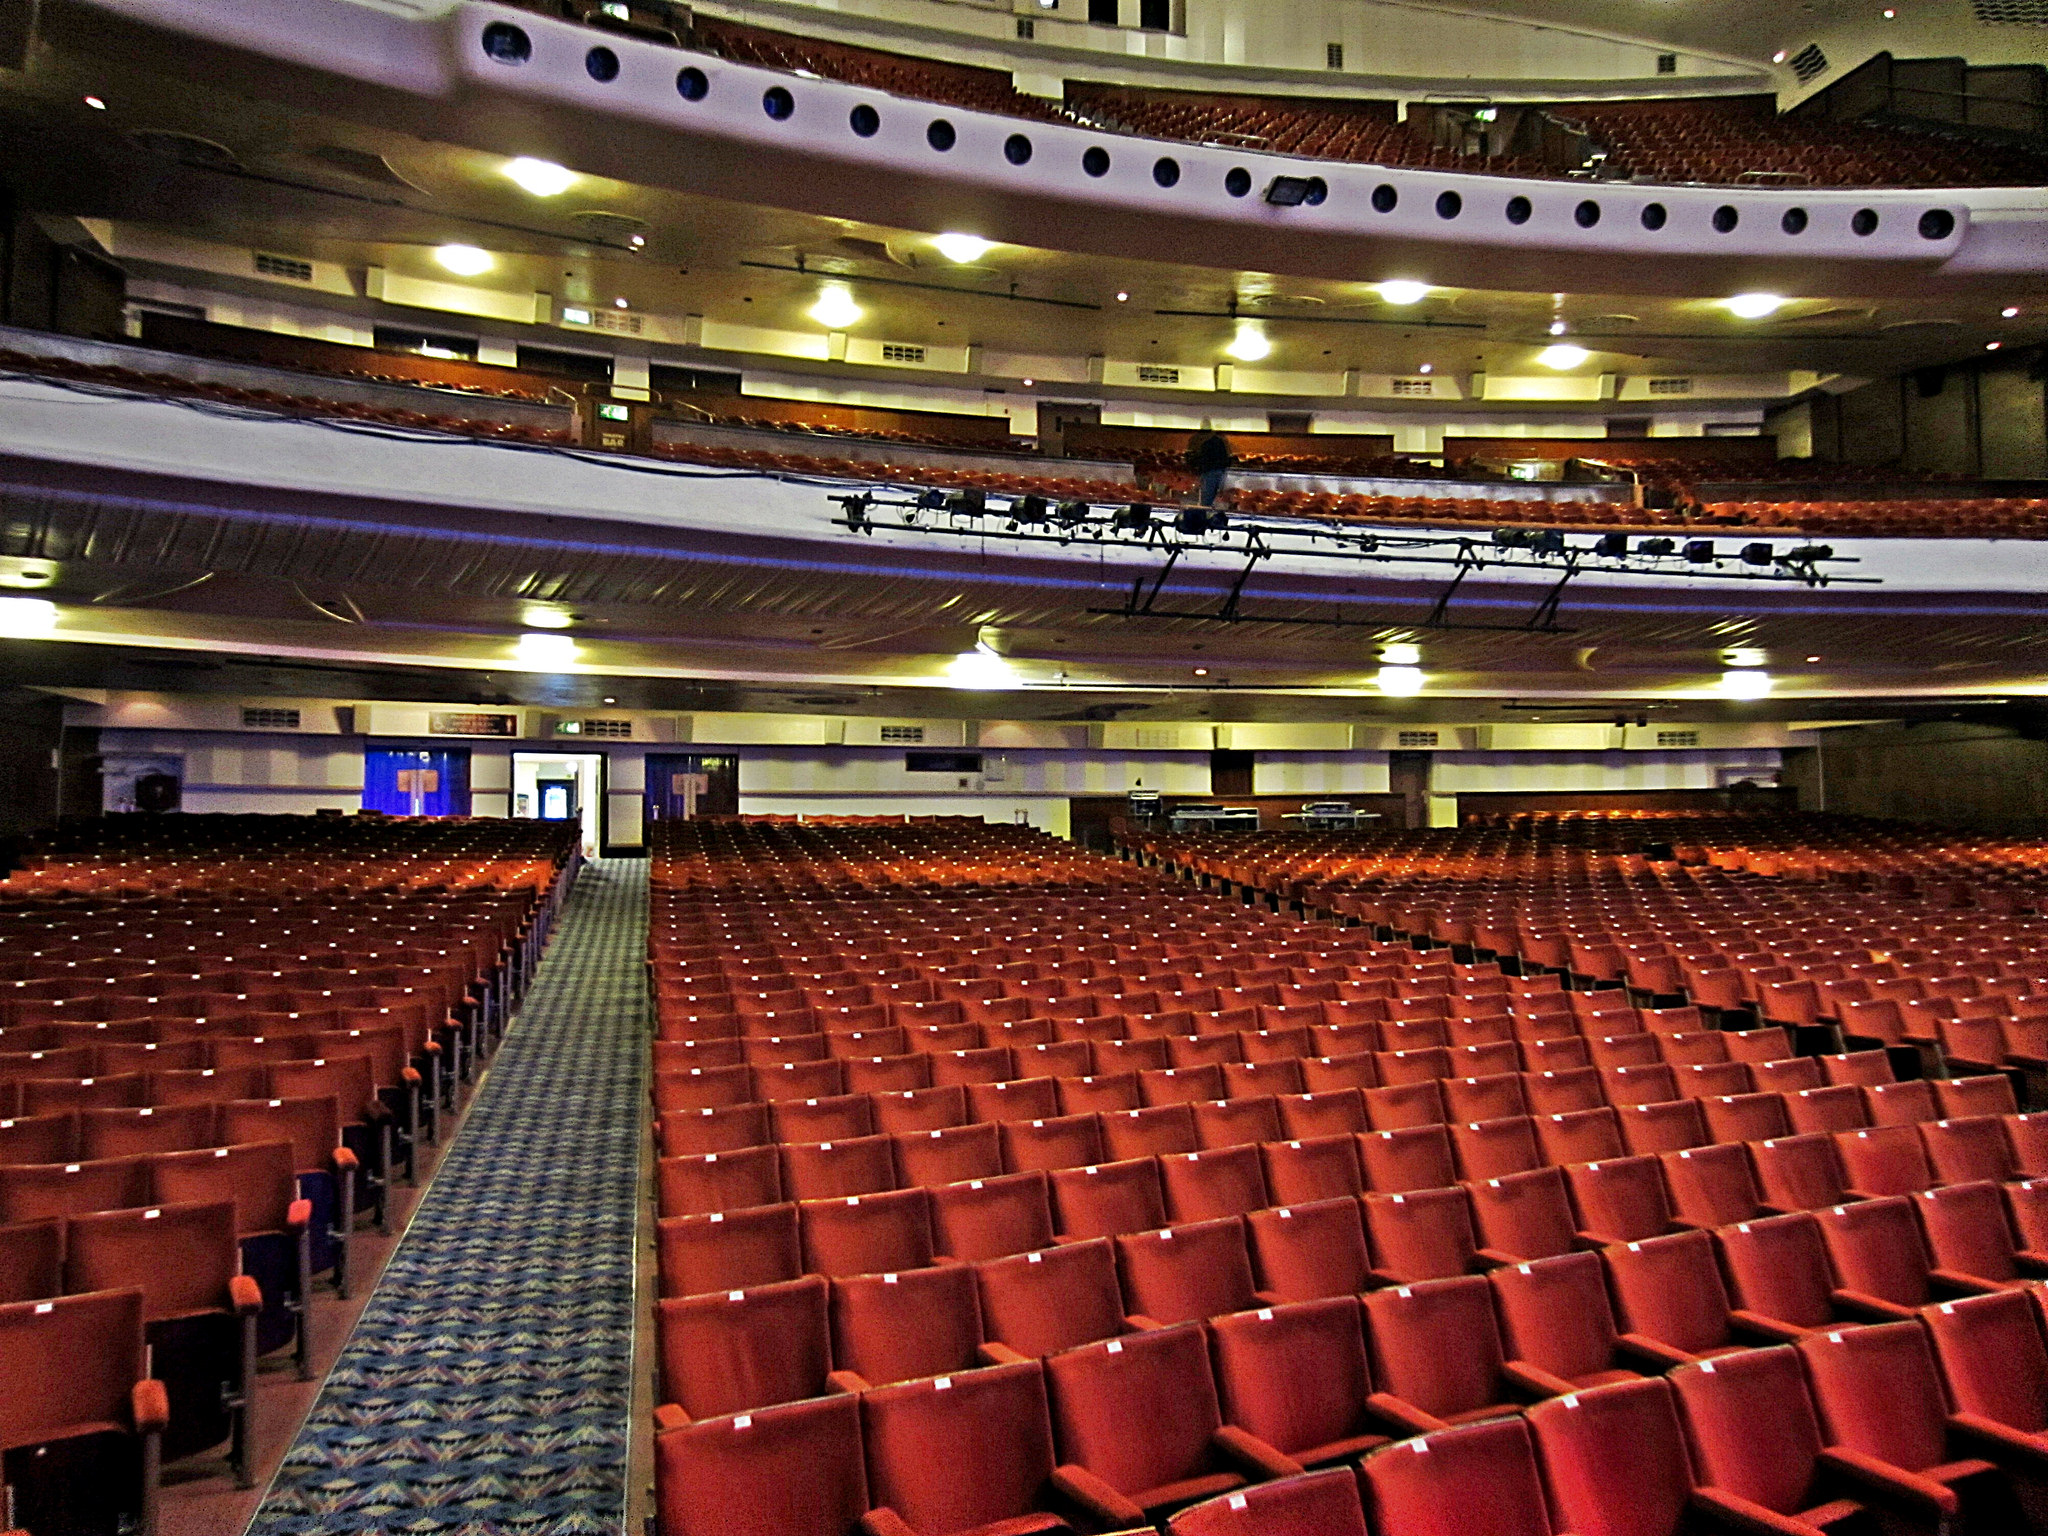 Attractive Hotels Near The Winter Gardens Blackpool Part - 9: ... Blackpool Hotels Near Winter Gardens Part - 23: Opera House Theatre  Blackpool Seating Plan Plans ...